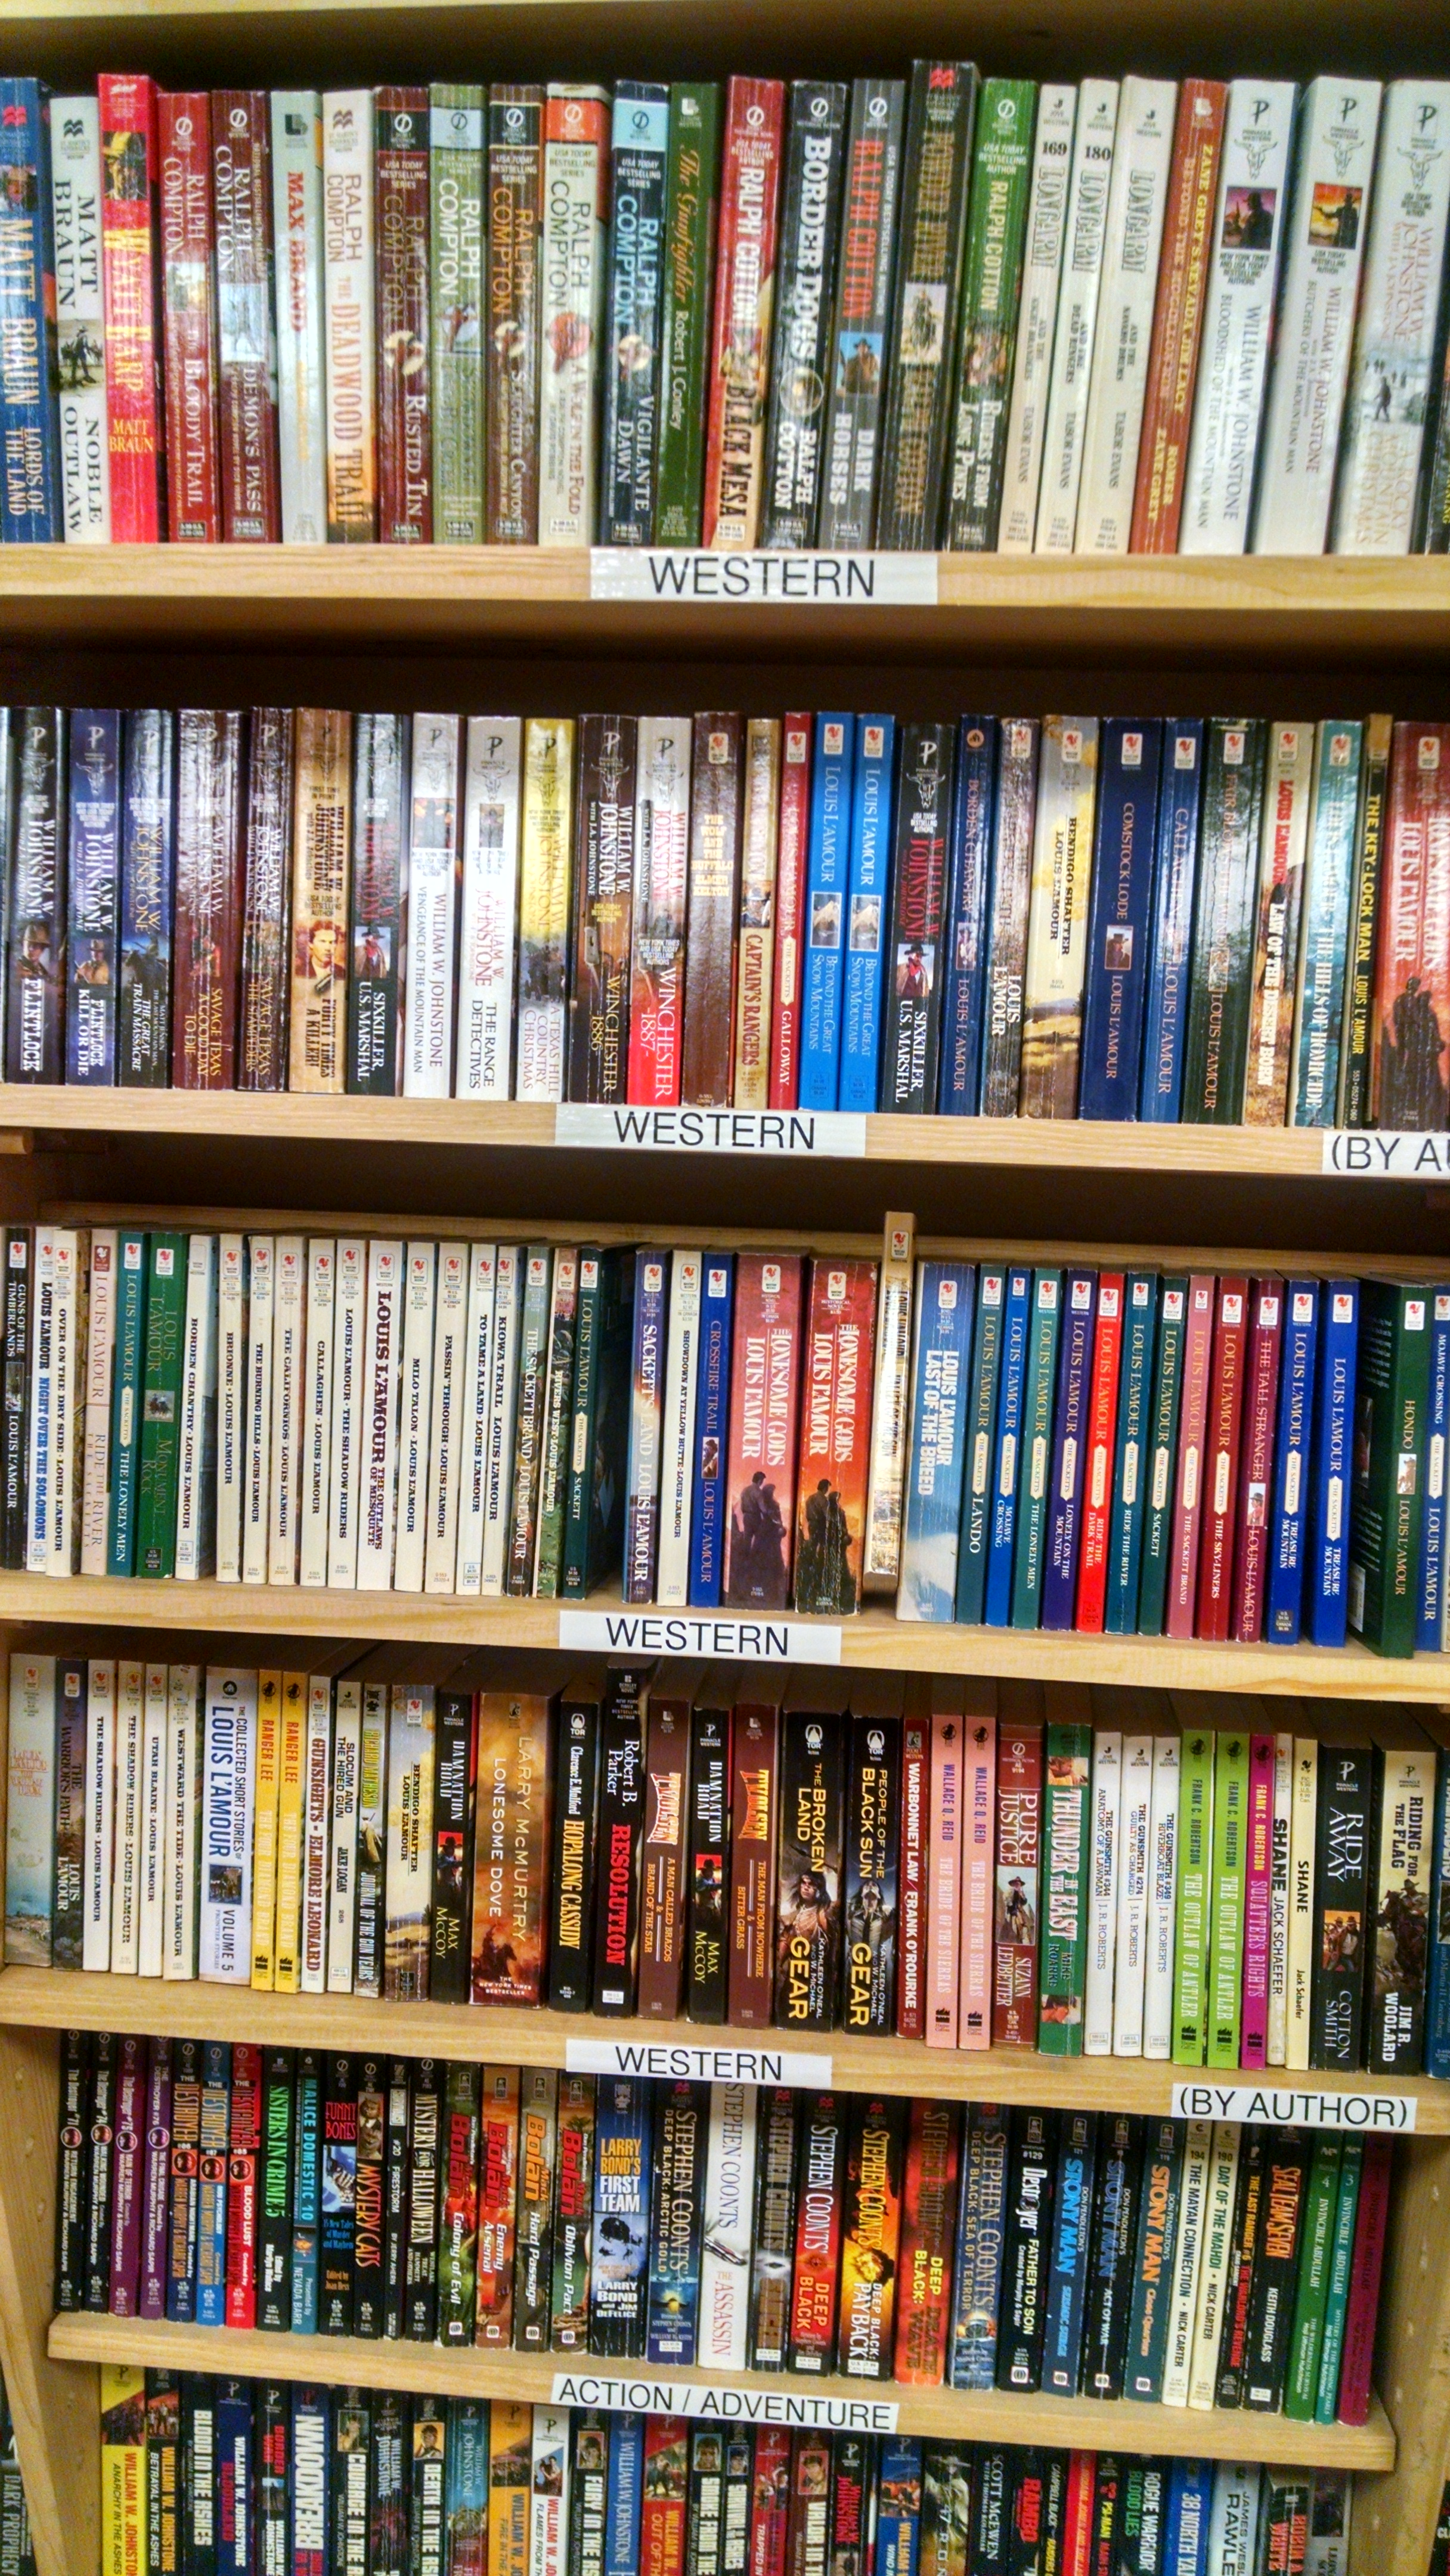 For real. It's a western section. (This is not common in all bookstores. Trust me.)Yeehaw!